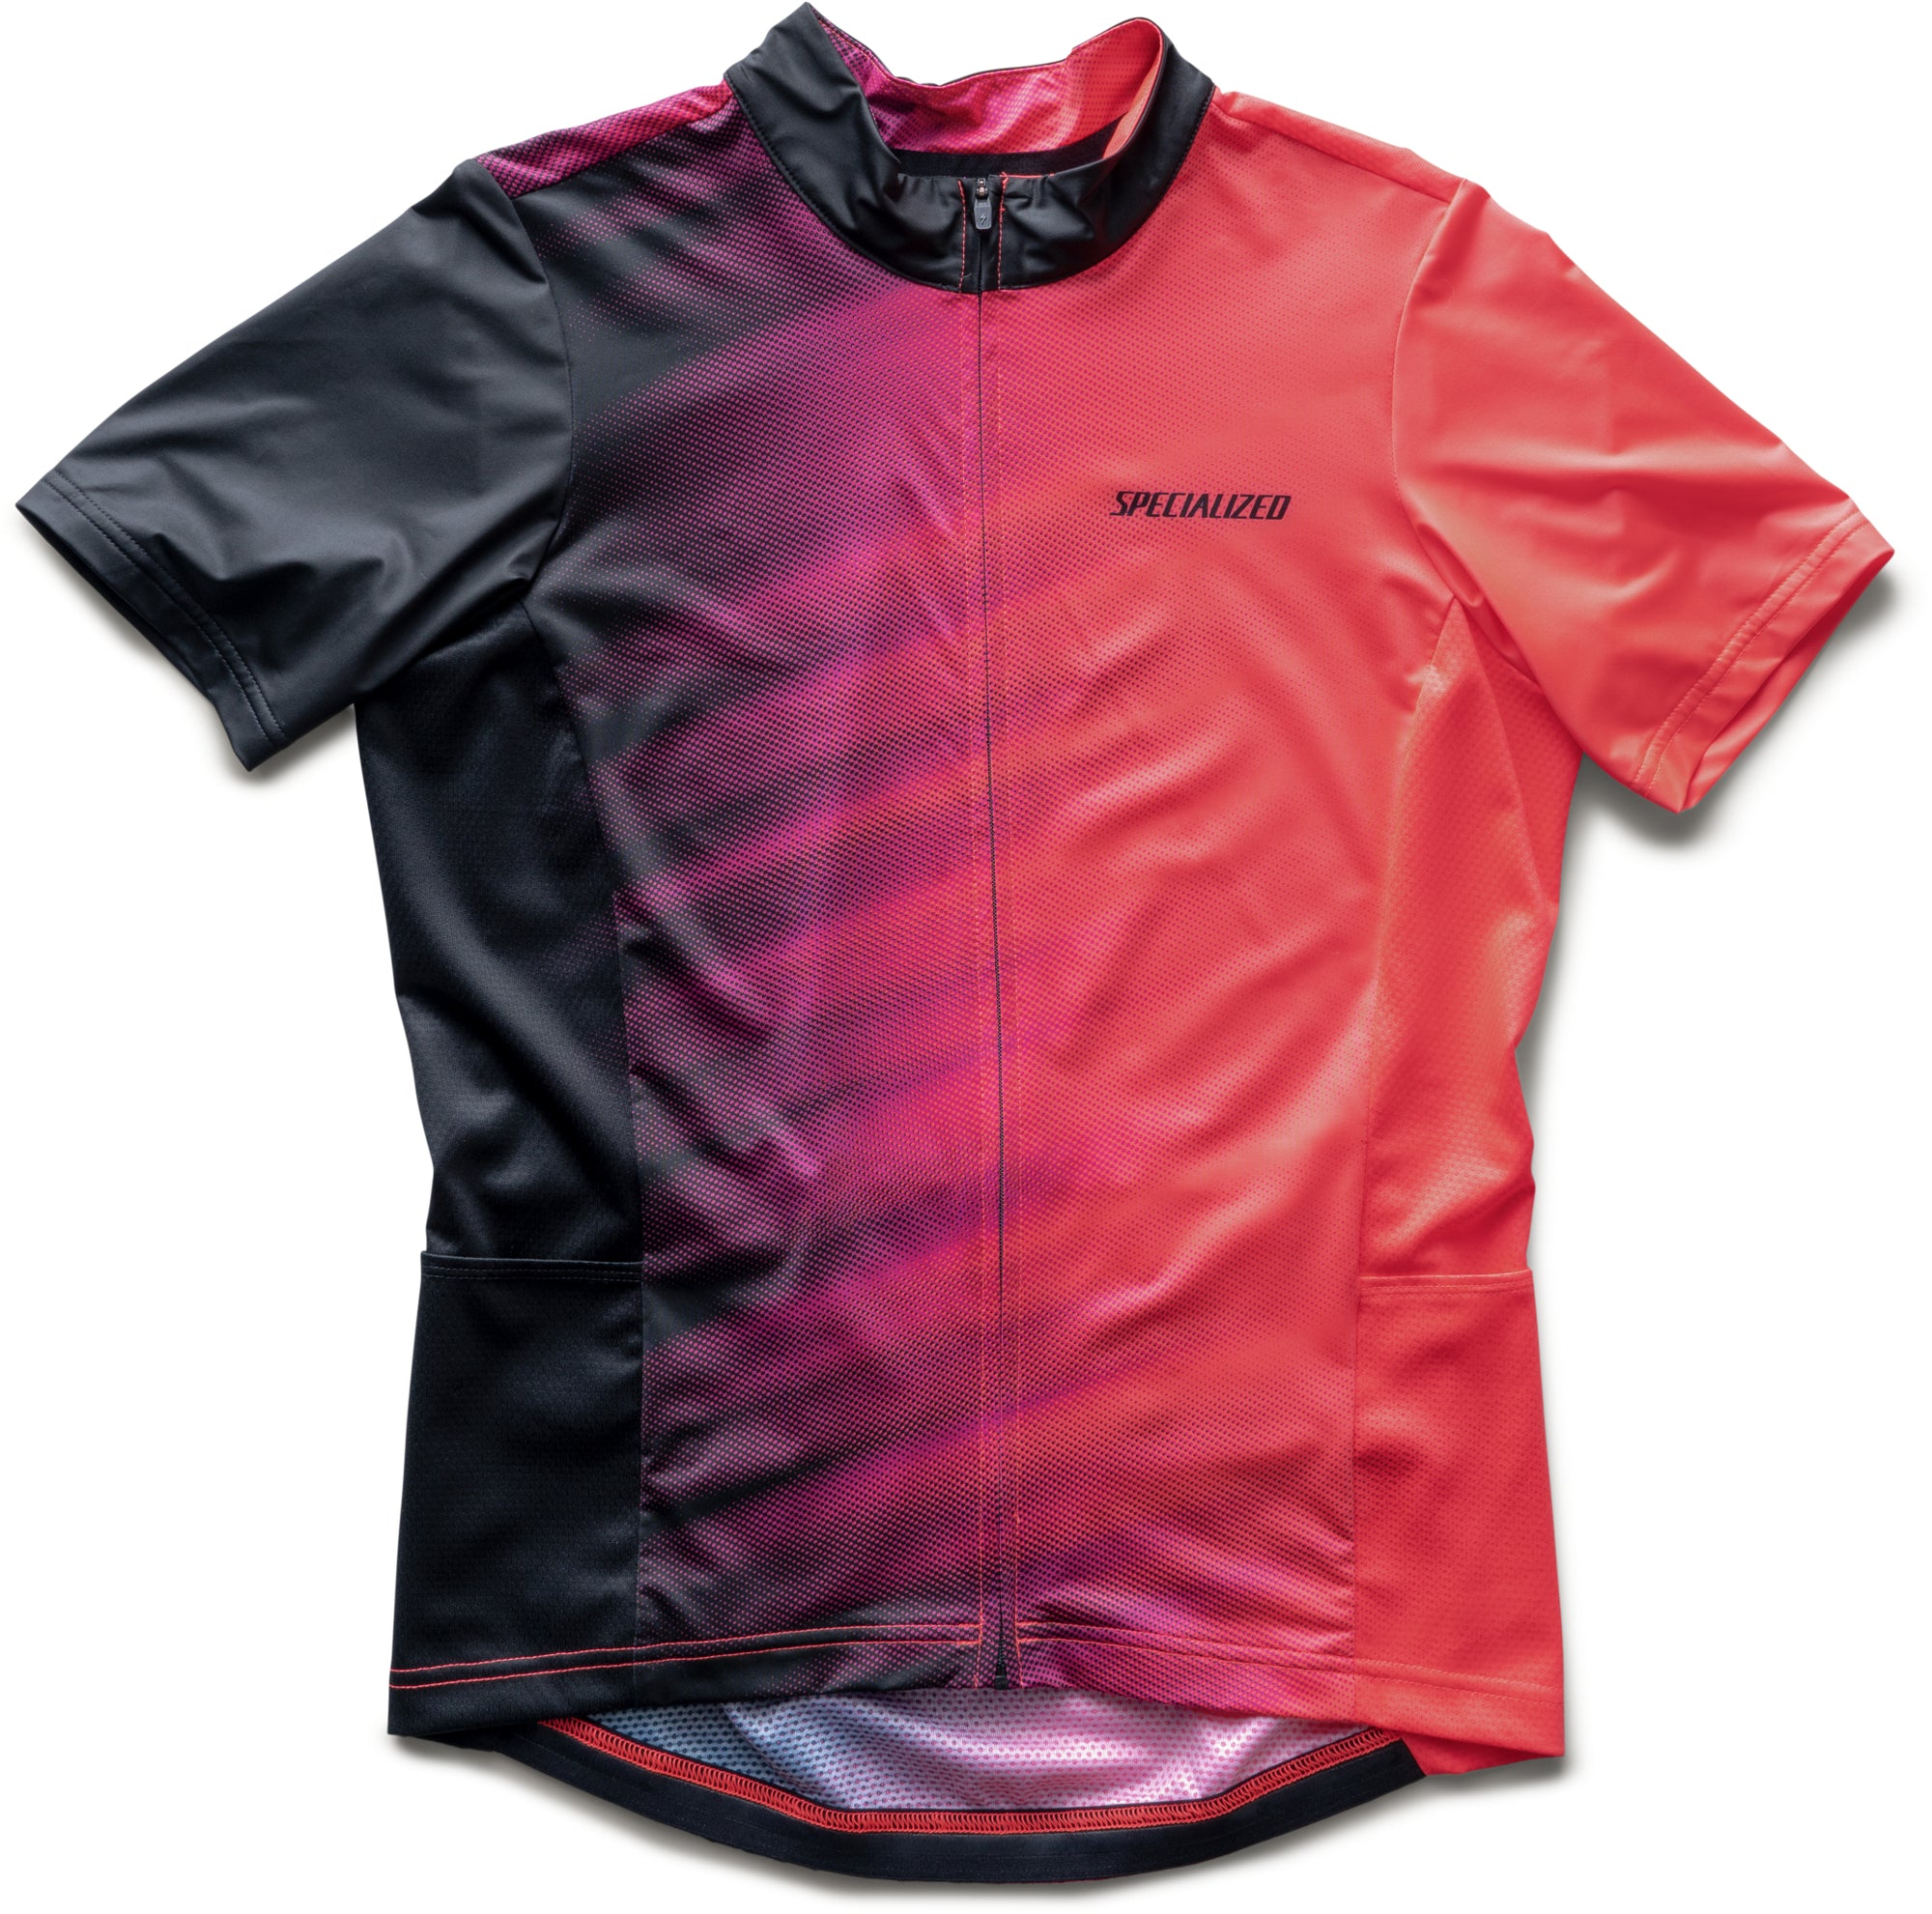 Women's RBX Jersey with SWAT™